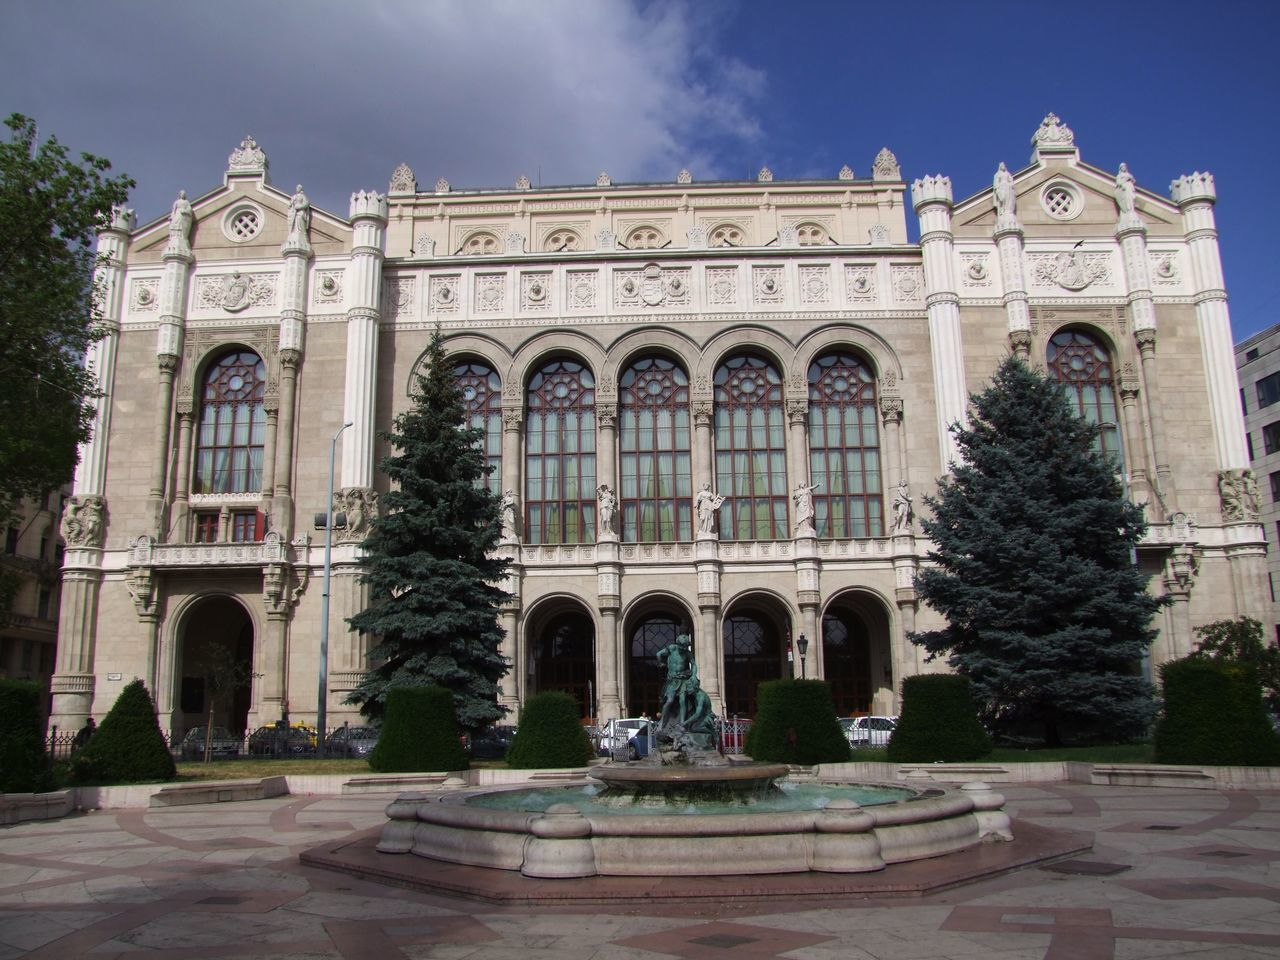 Vigado Concert Hall, Vigado Square Blue Sky White Clouds Budapest Composition Hungary Sunlight Trees Arches Architectural Columns Architecture Building Exterior Building Facade Built Structure Capital City Concert Hall  Exterior Façade History Low Angle View Music Hall No People Outdoor Photography Tour Attraction Travel Destination Vigado Concert Hall Vigado Square